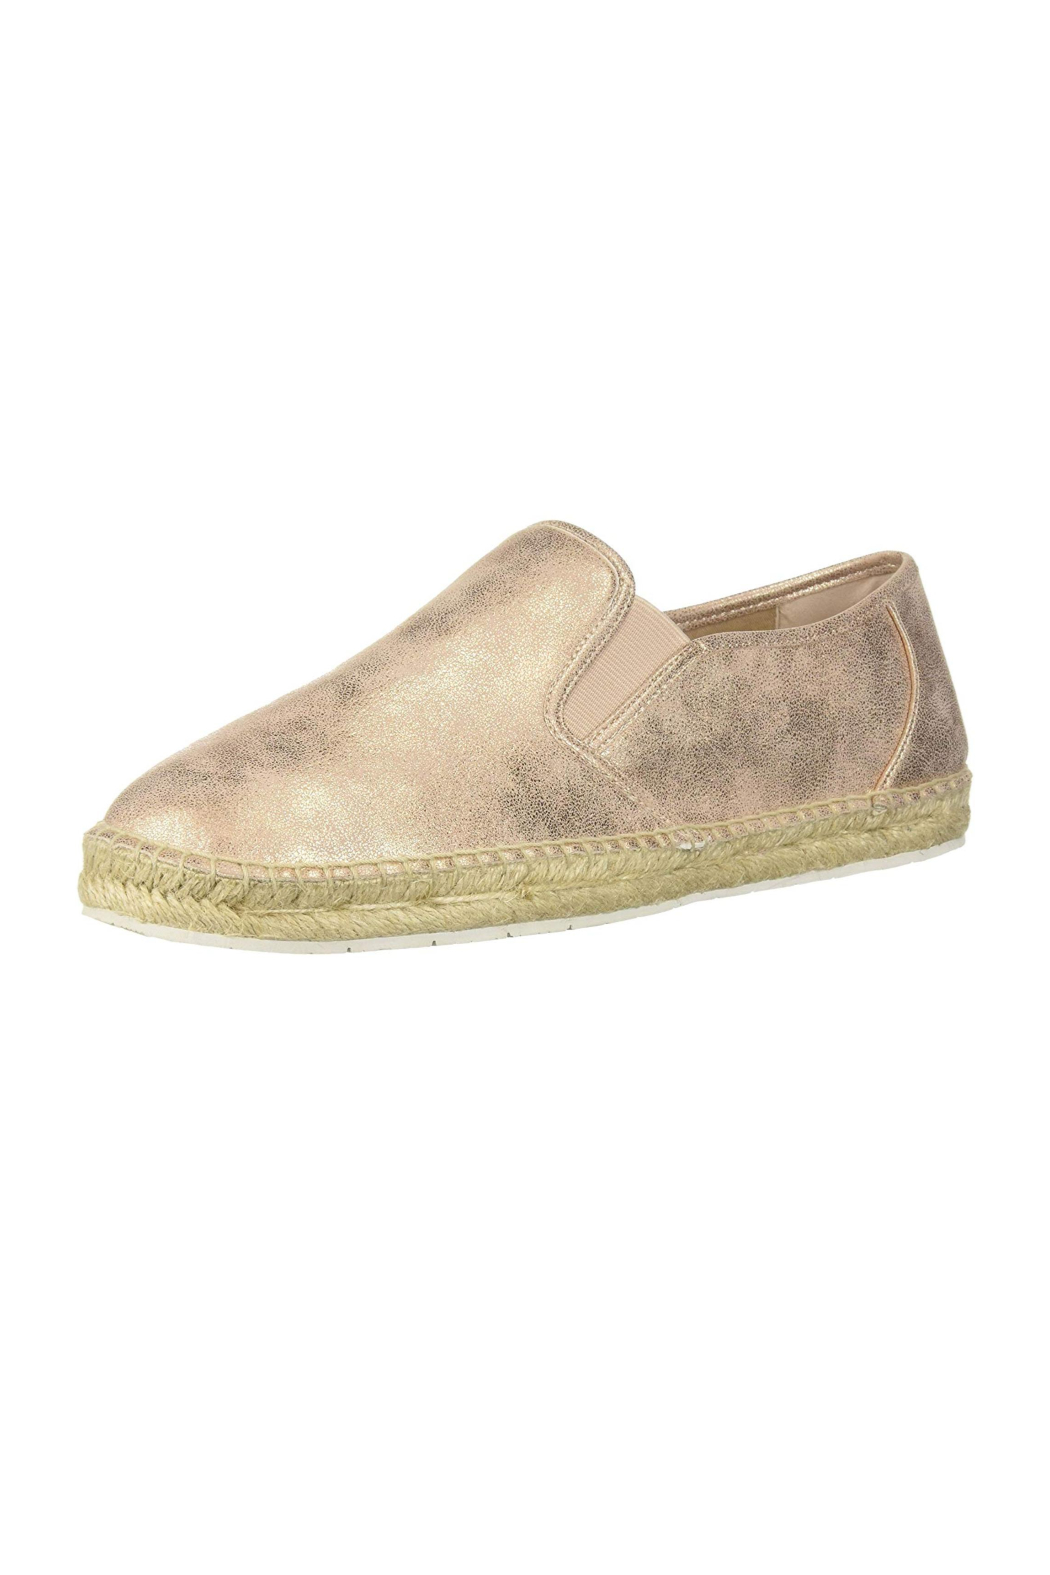 BC Footwear House Of Mirrors Espadrille - Main Image